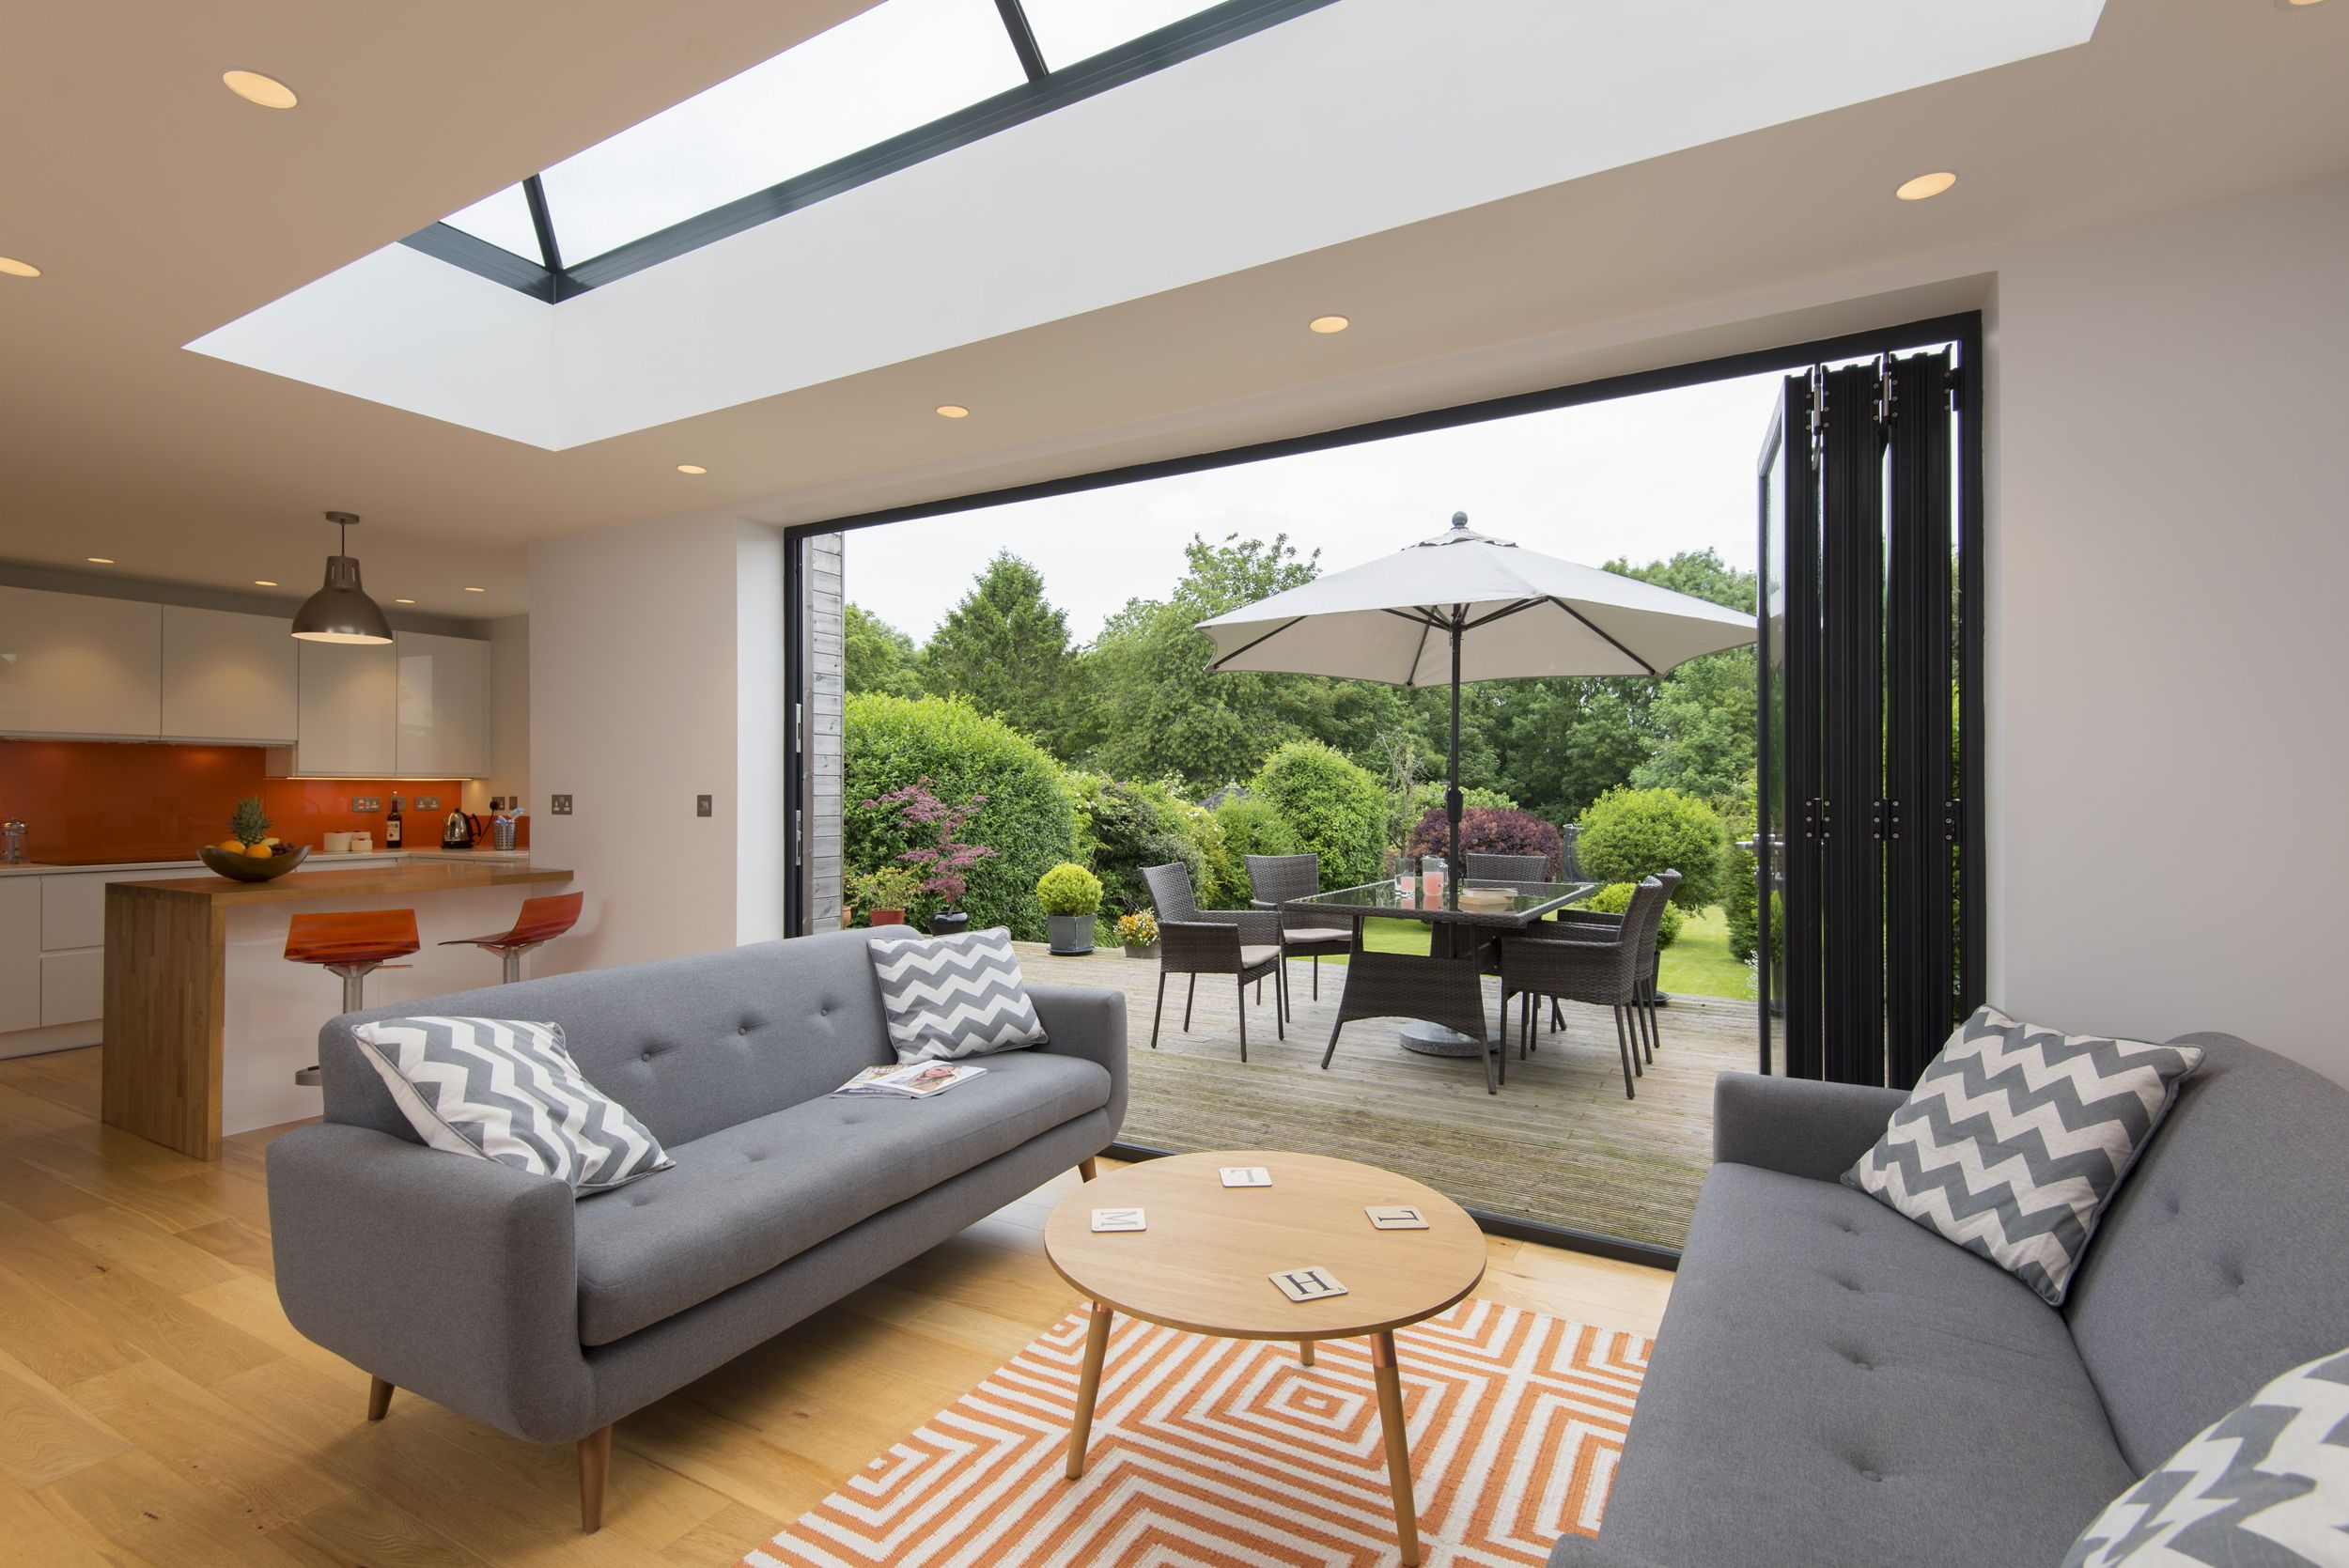 Outroom With Images Bifold Doors Bi Folding Doors Kitchen Building A House